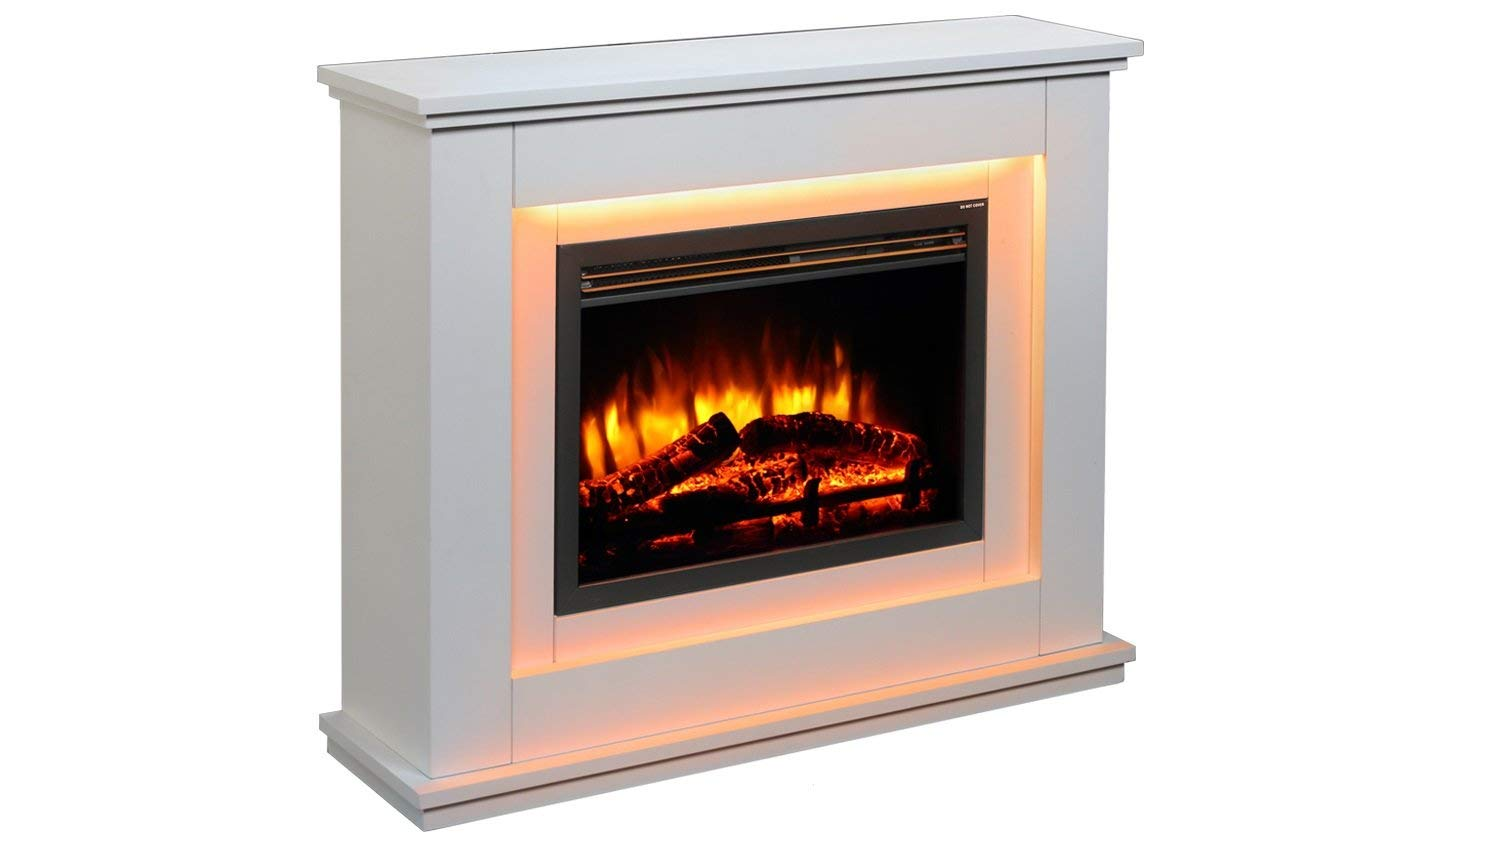 Best Electric Log Burner 2019 The Best Electric Fires And Stoves